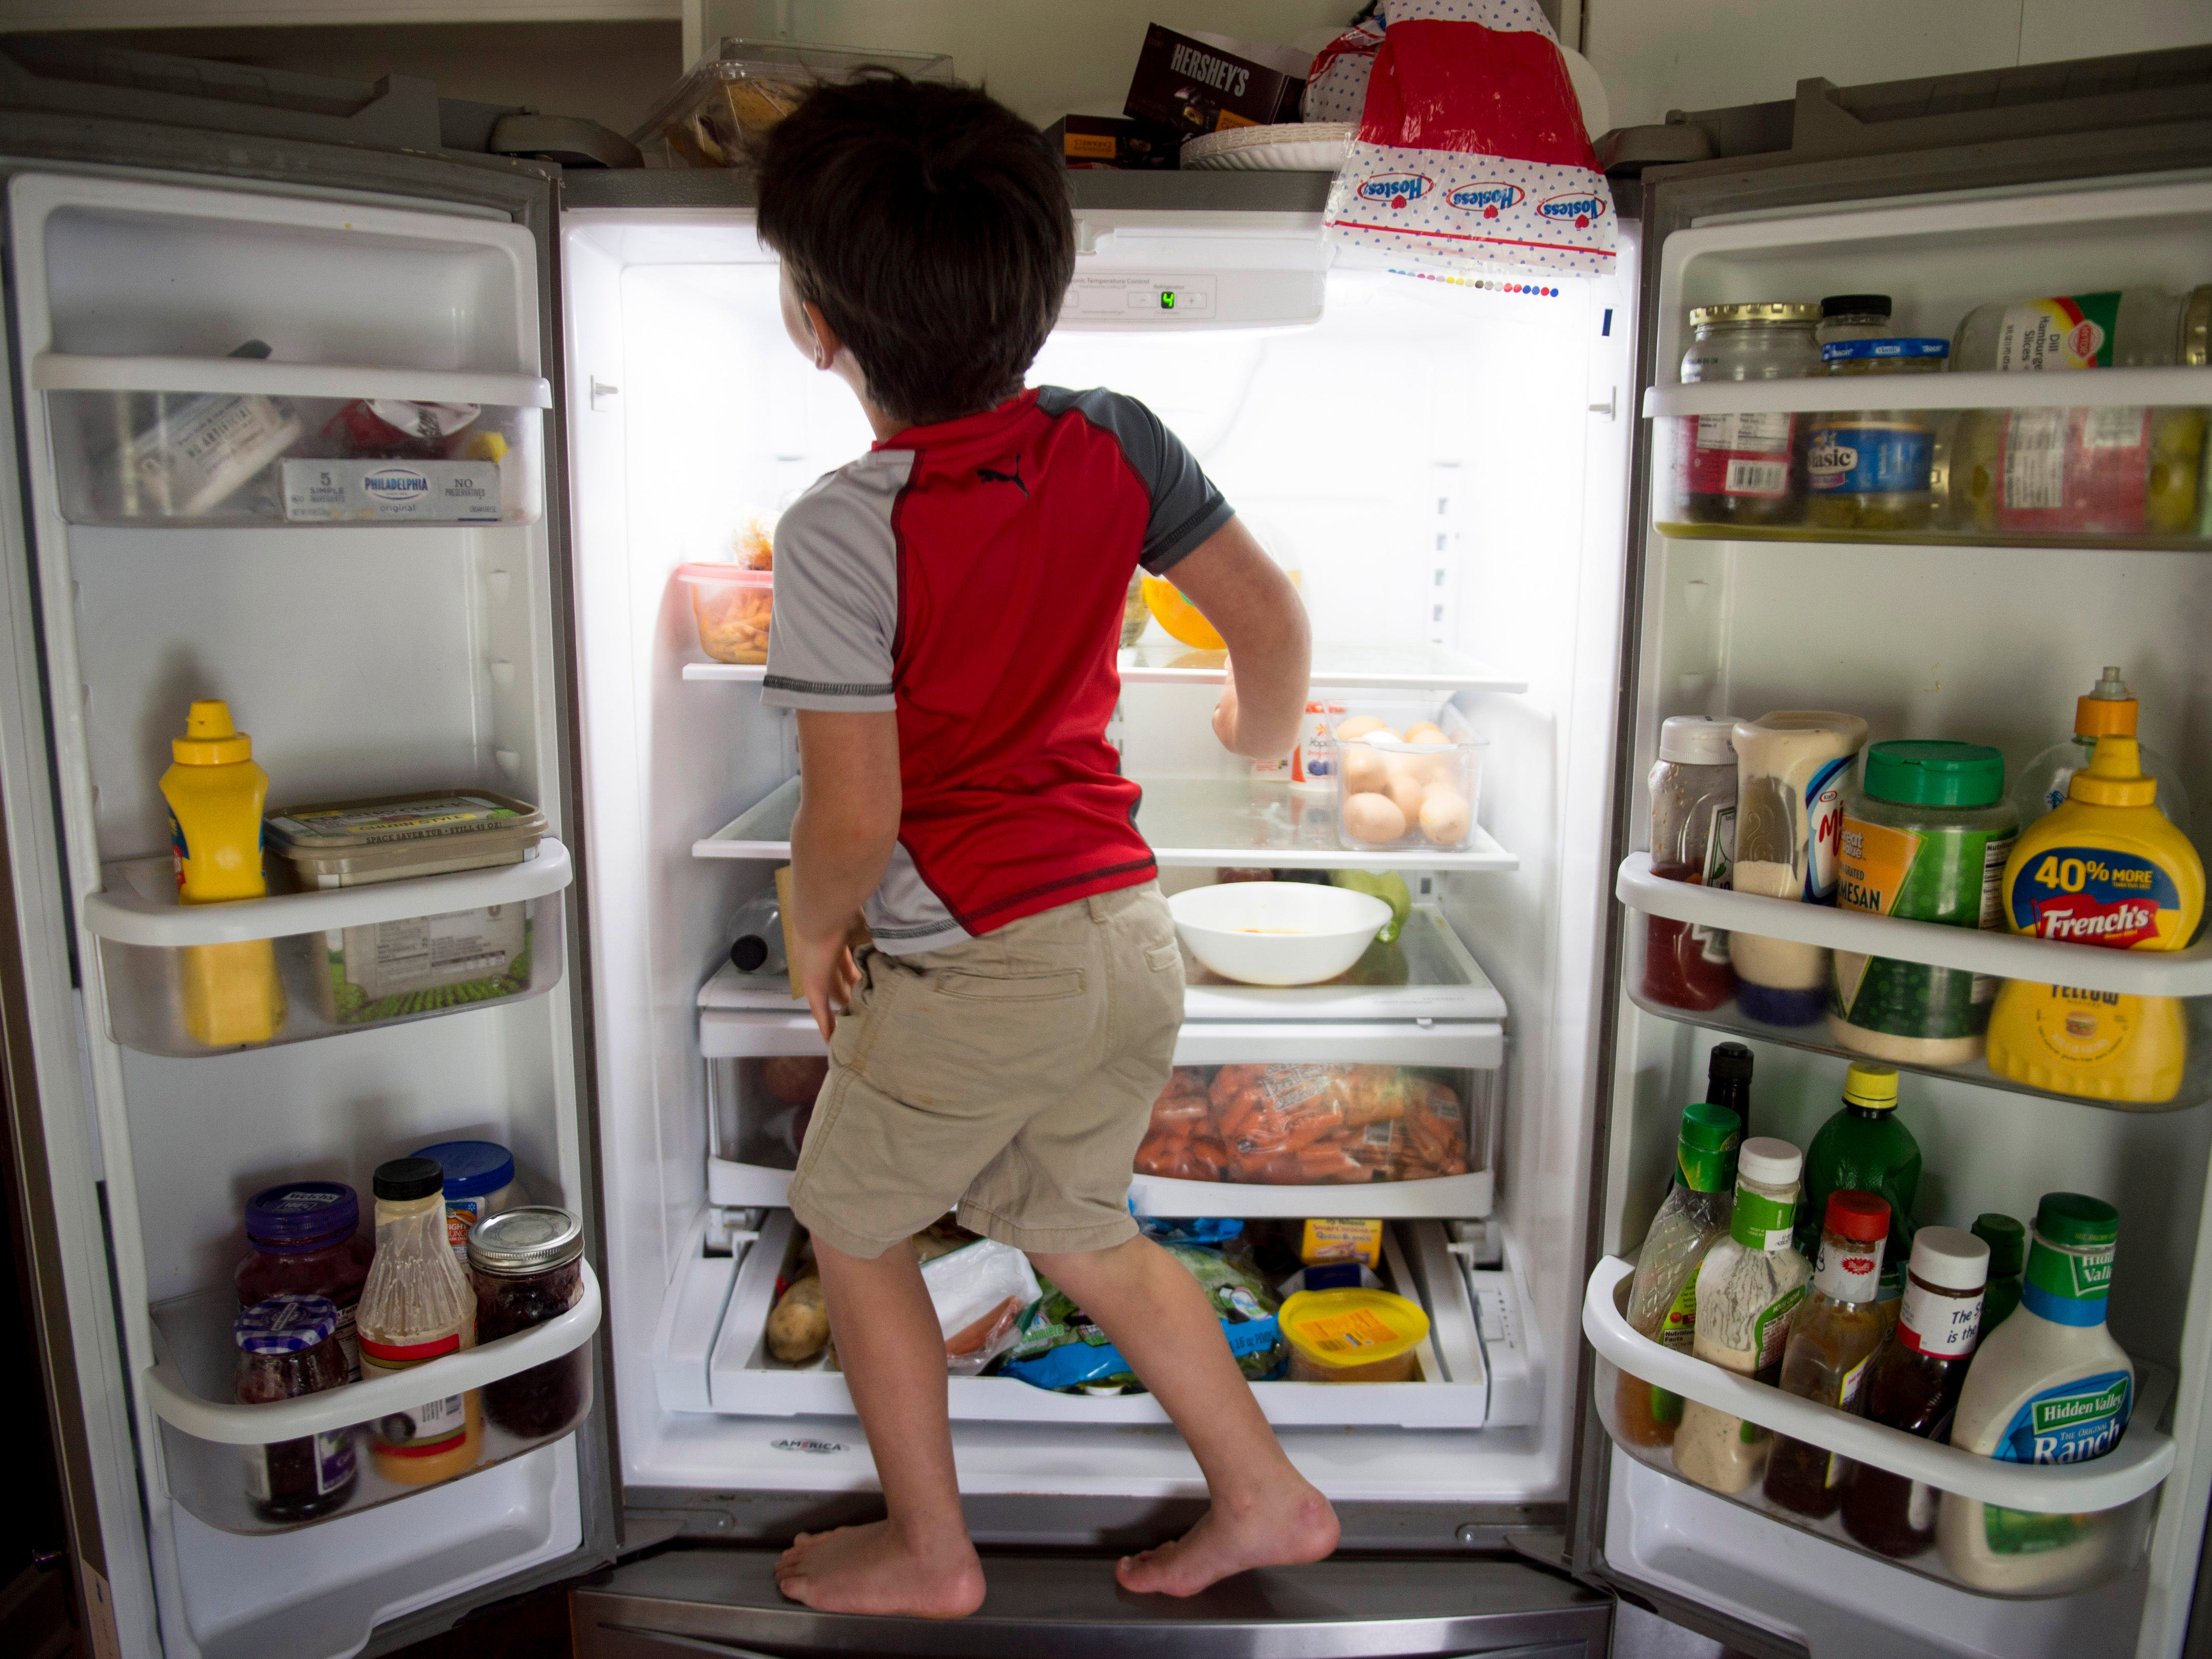 Leland Smith, 5, offers his services to retrieve something from his great aunt's refrigerator for his mom, Amanda in June of 2017. Amanda Smith uses a motorized wheelchair which makes it difficult to reach items on top of the appliance.